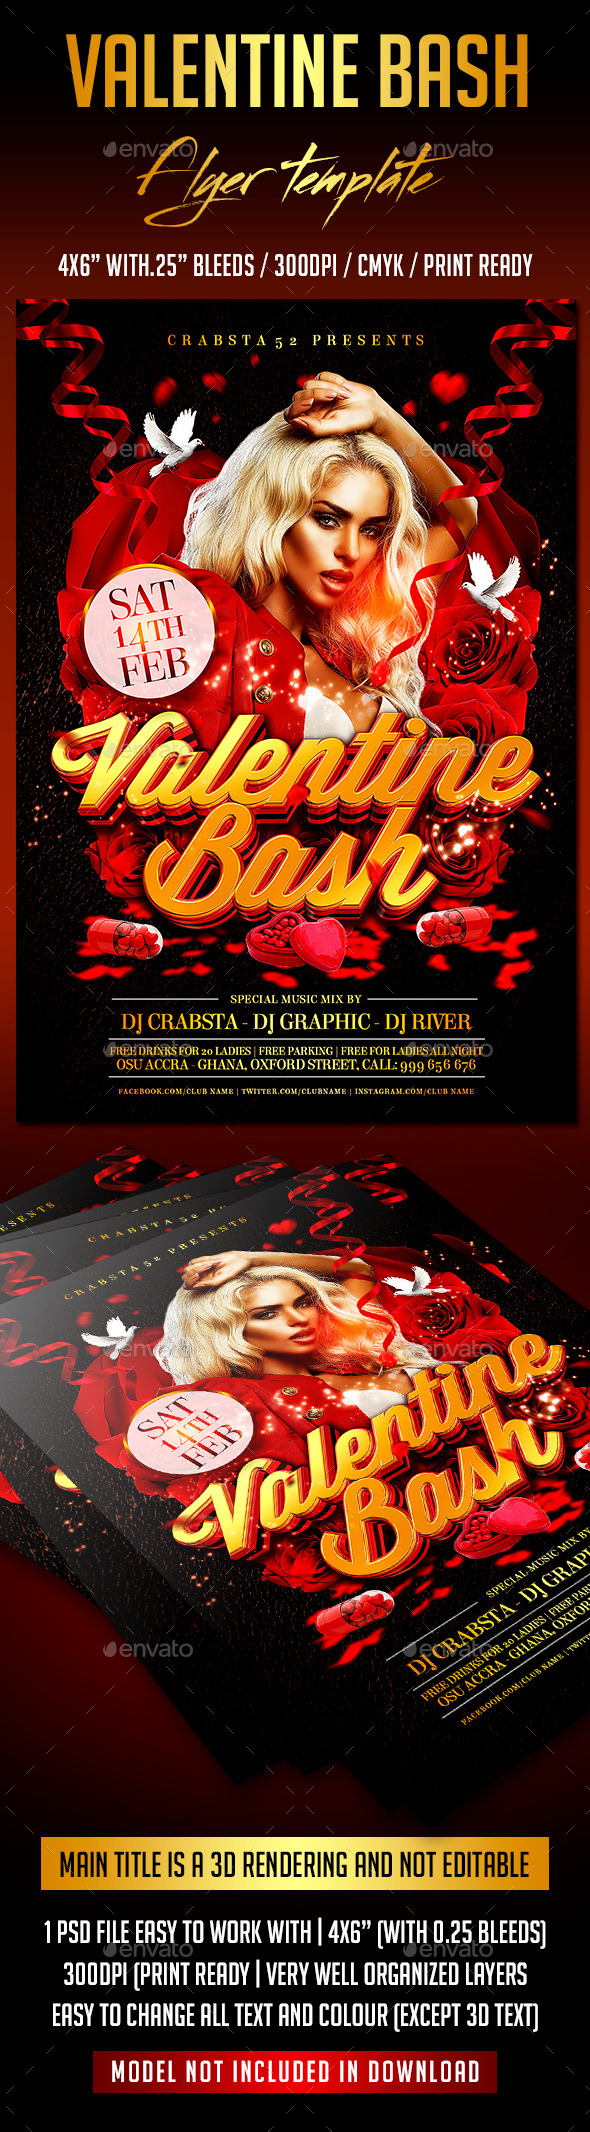 Valentine Bash Flyer Template - Events Flyers